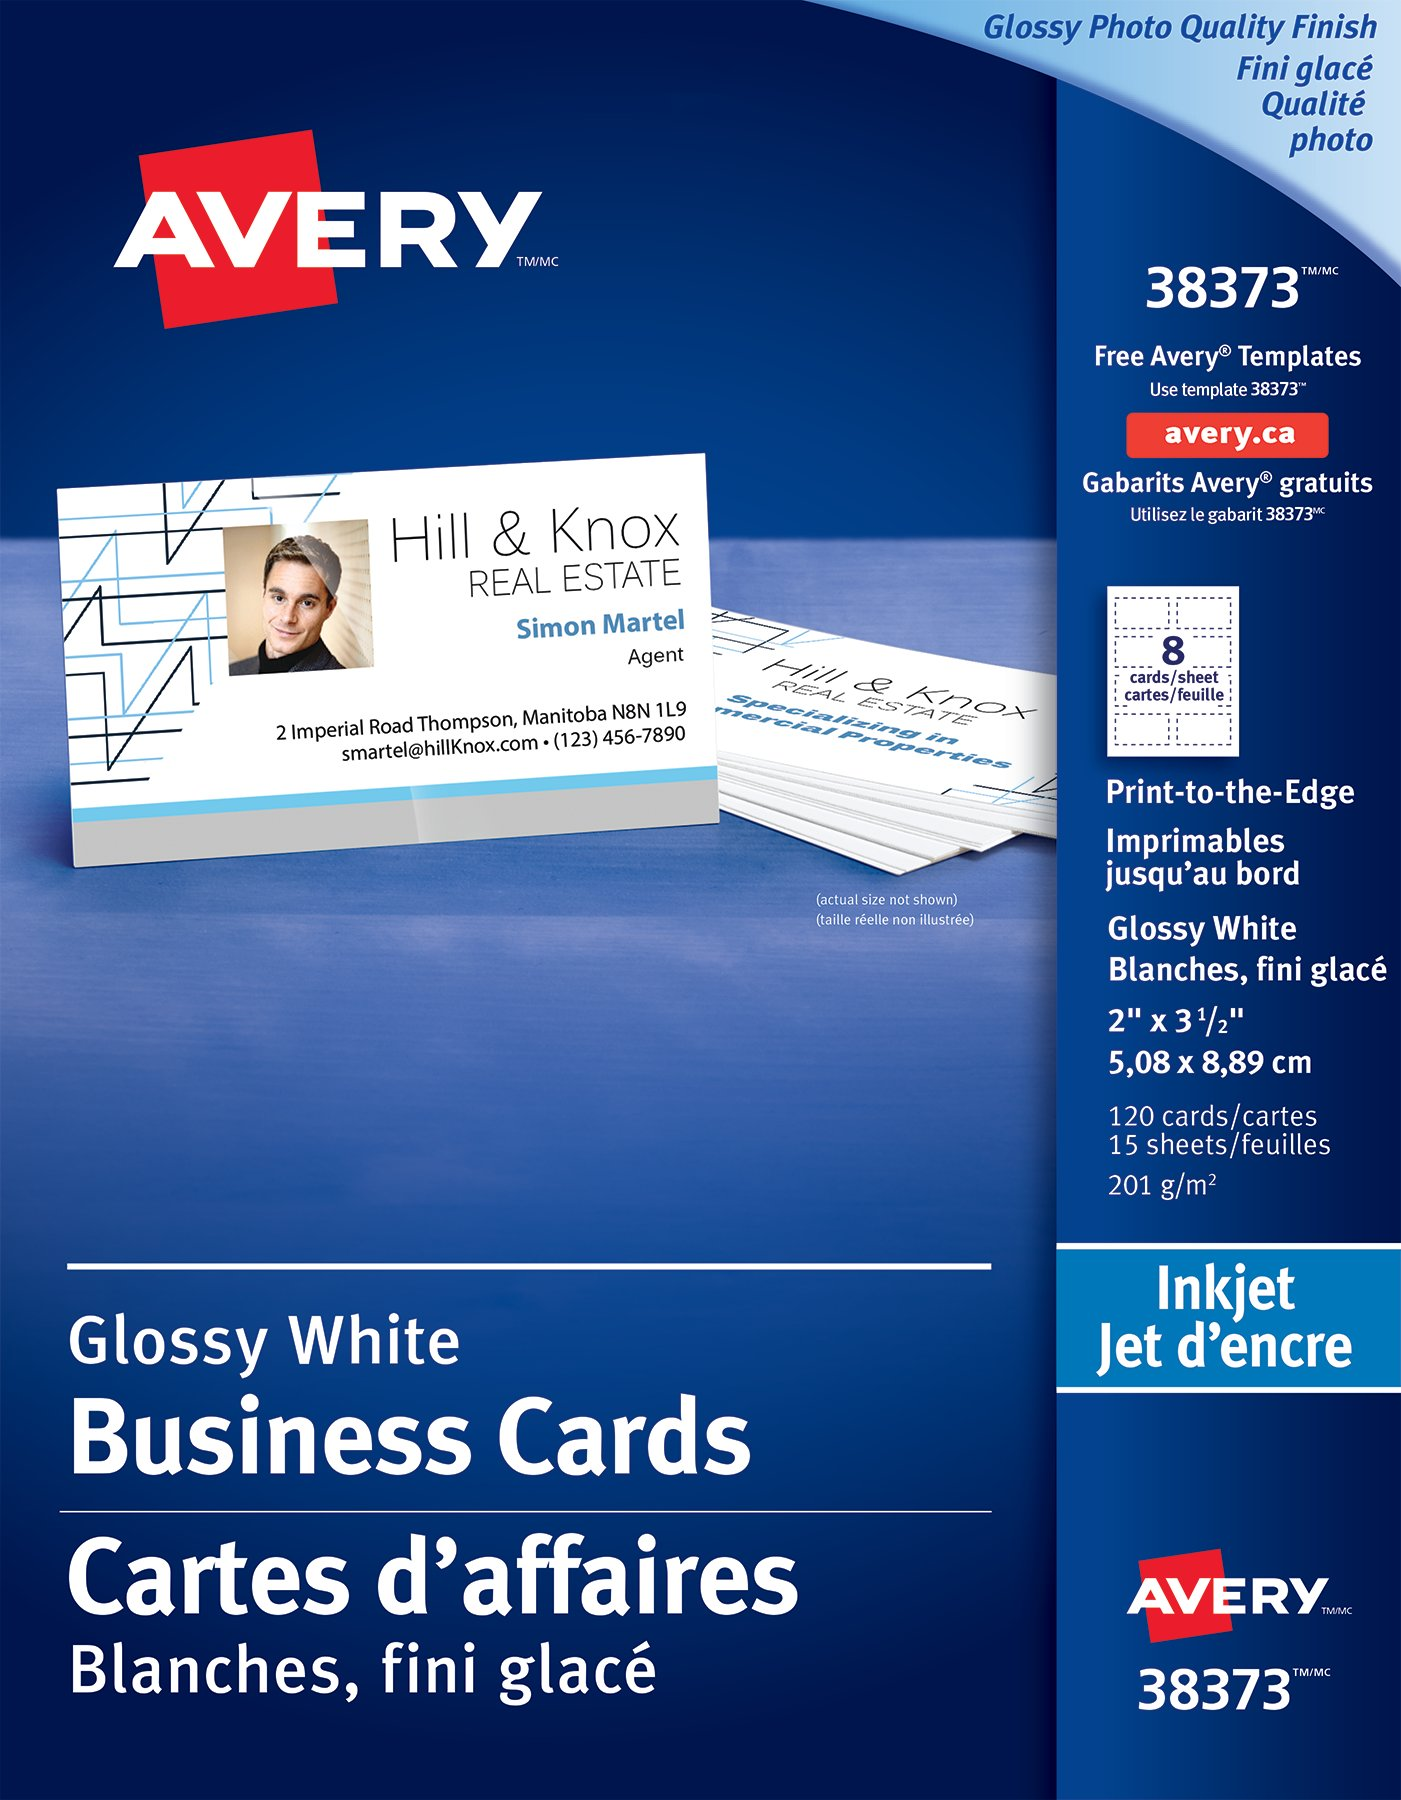 Business cards make your own online custom business card avery glossy photo quality business cards 38373 2 x 3 rectangle alramifo Image collections